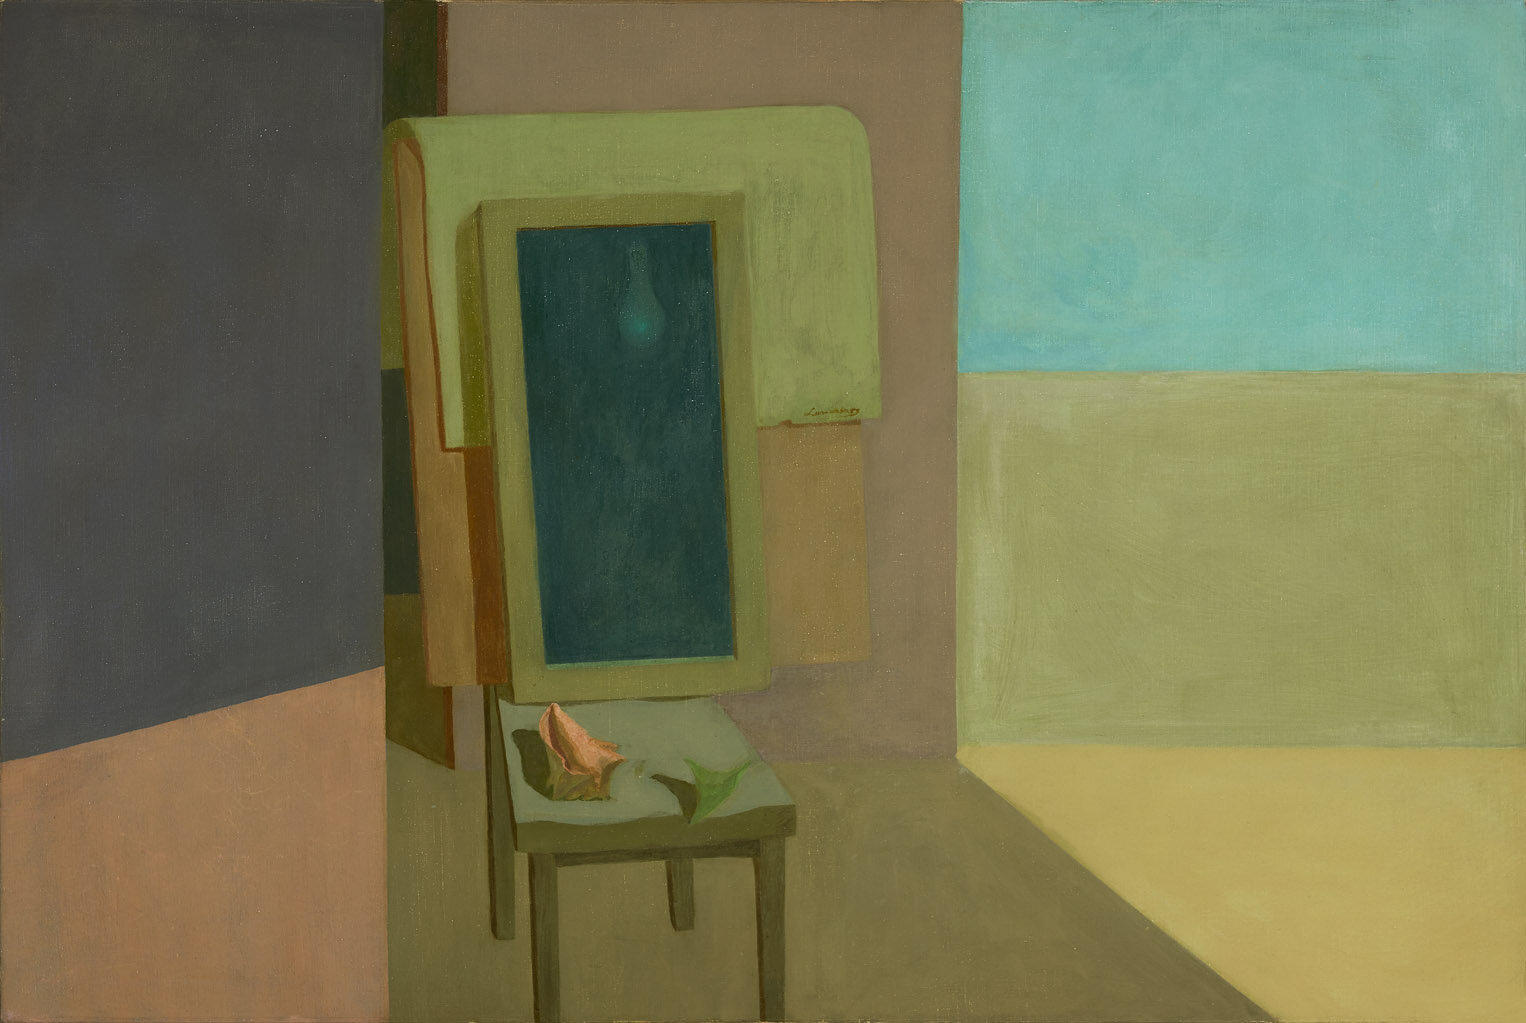 The Mirror (The Mirror III) , 1956 oil on canvas 40 x 60 inches; 101.6 x 152.4 centimeters